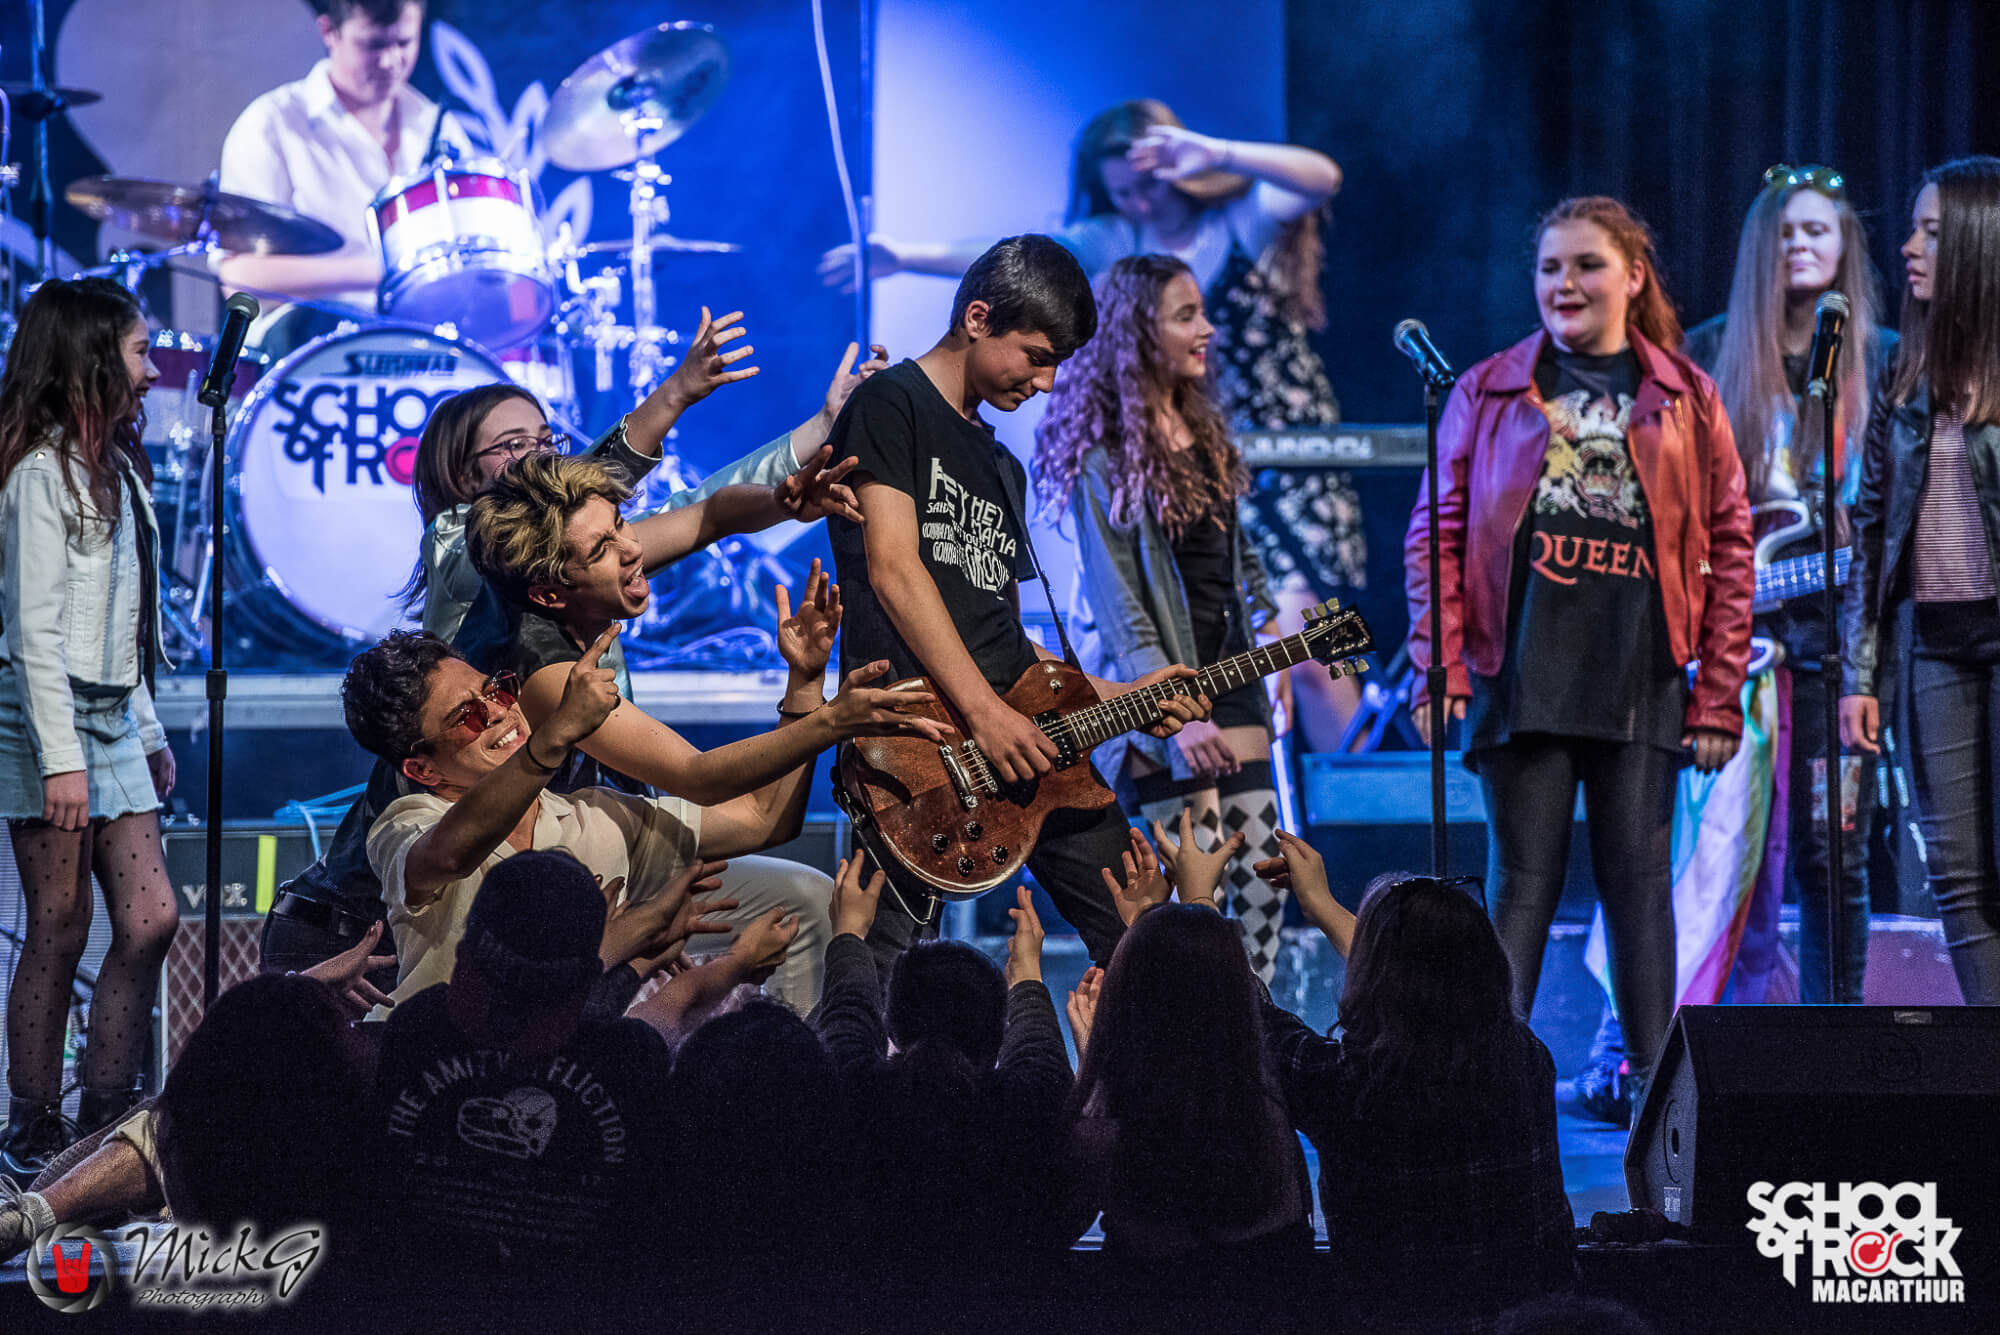 School of Rock Macarthur performing a tribute to Queen.